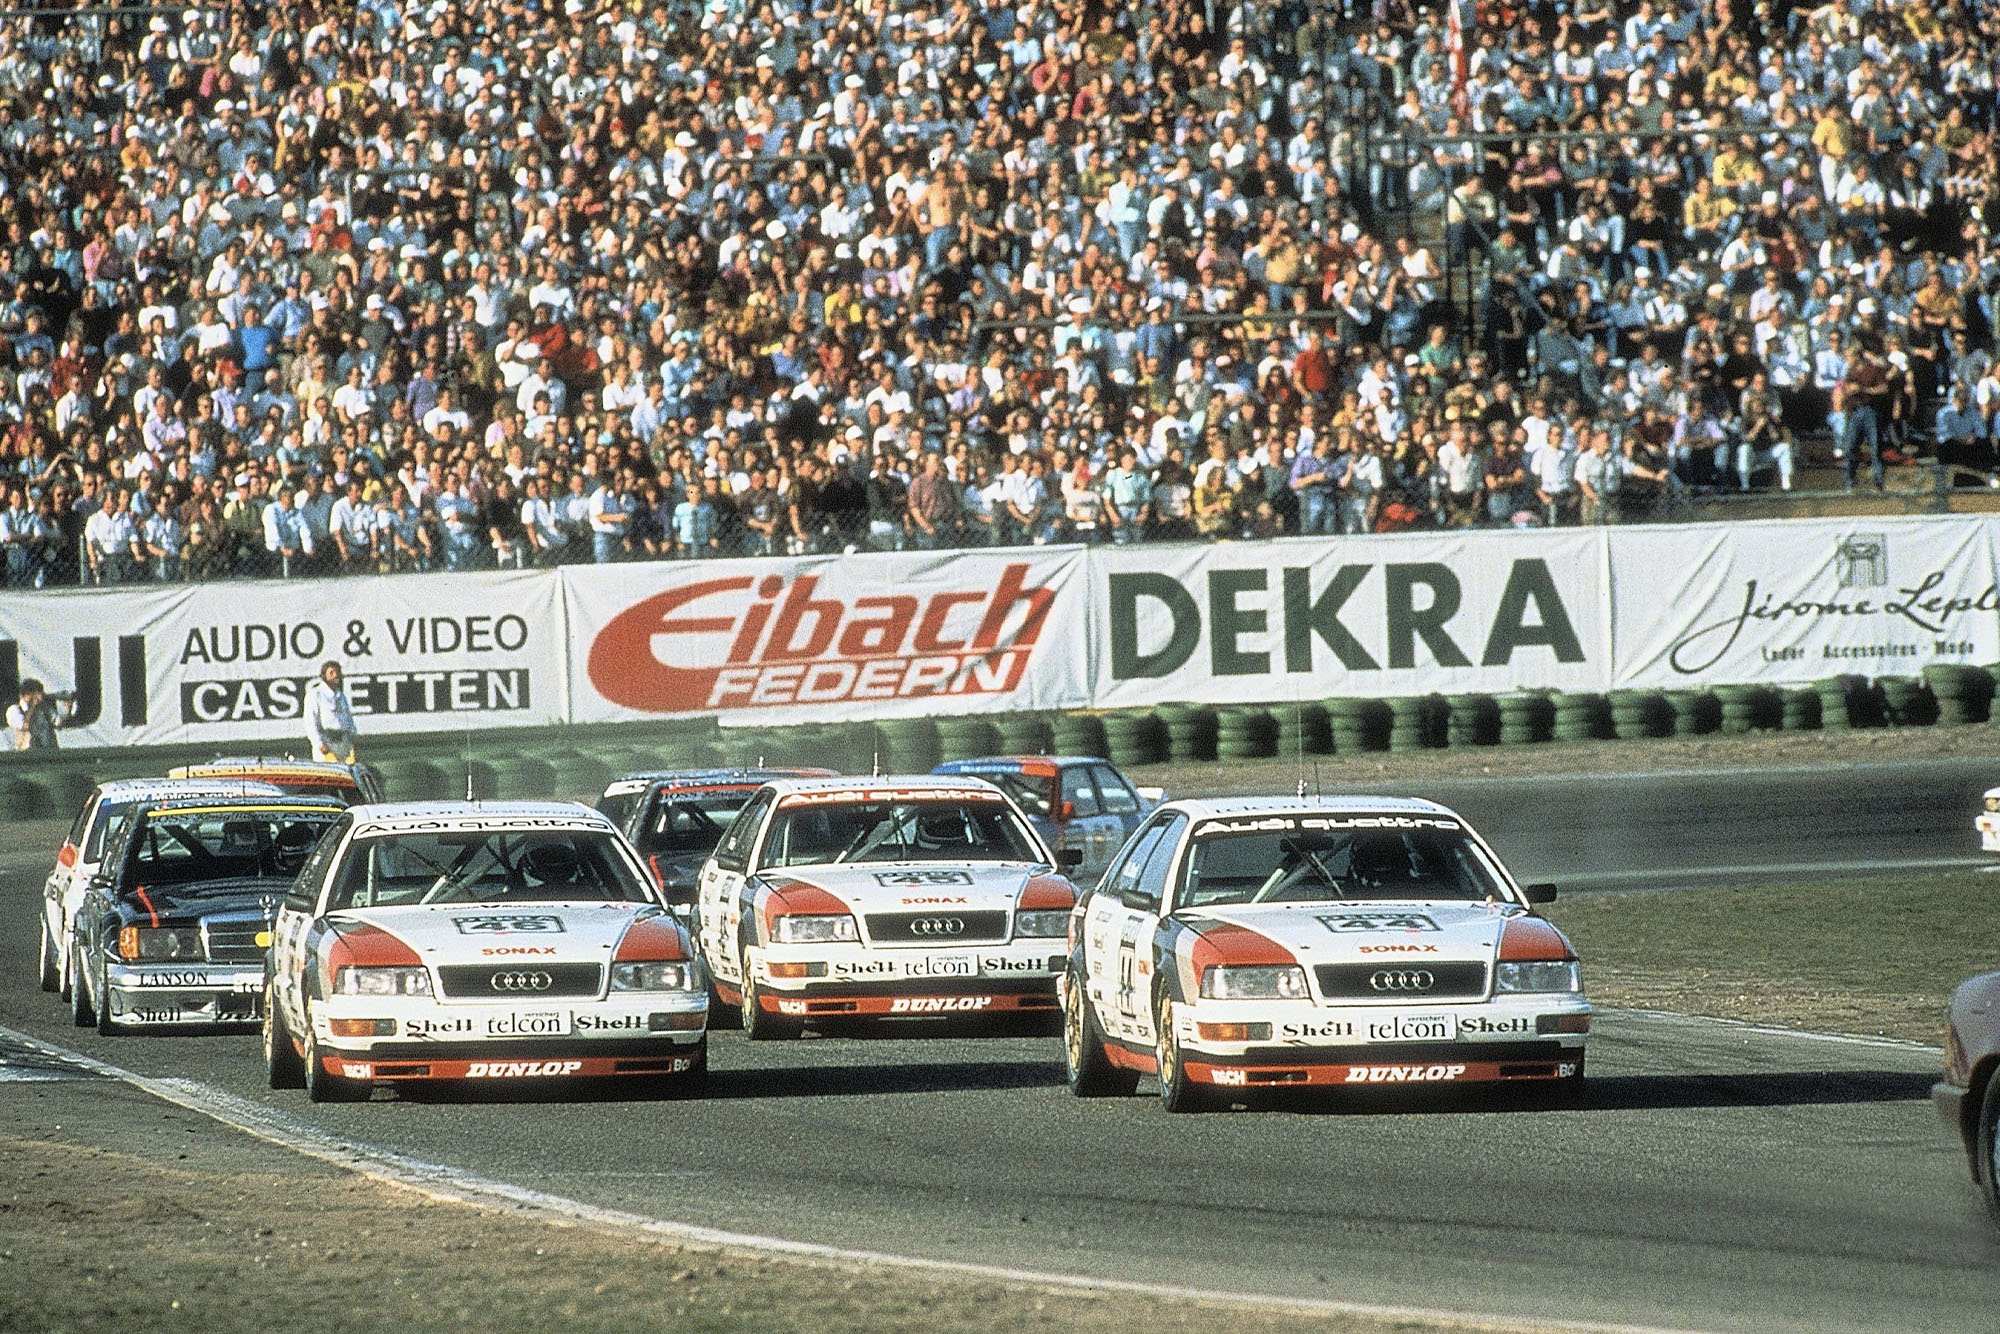 Audi V8 quattros lead the field in a 1990 DTM meeting